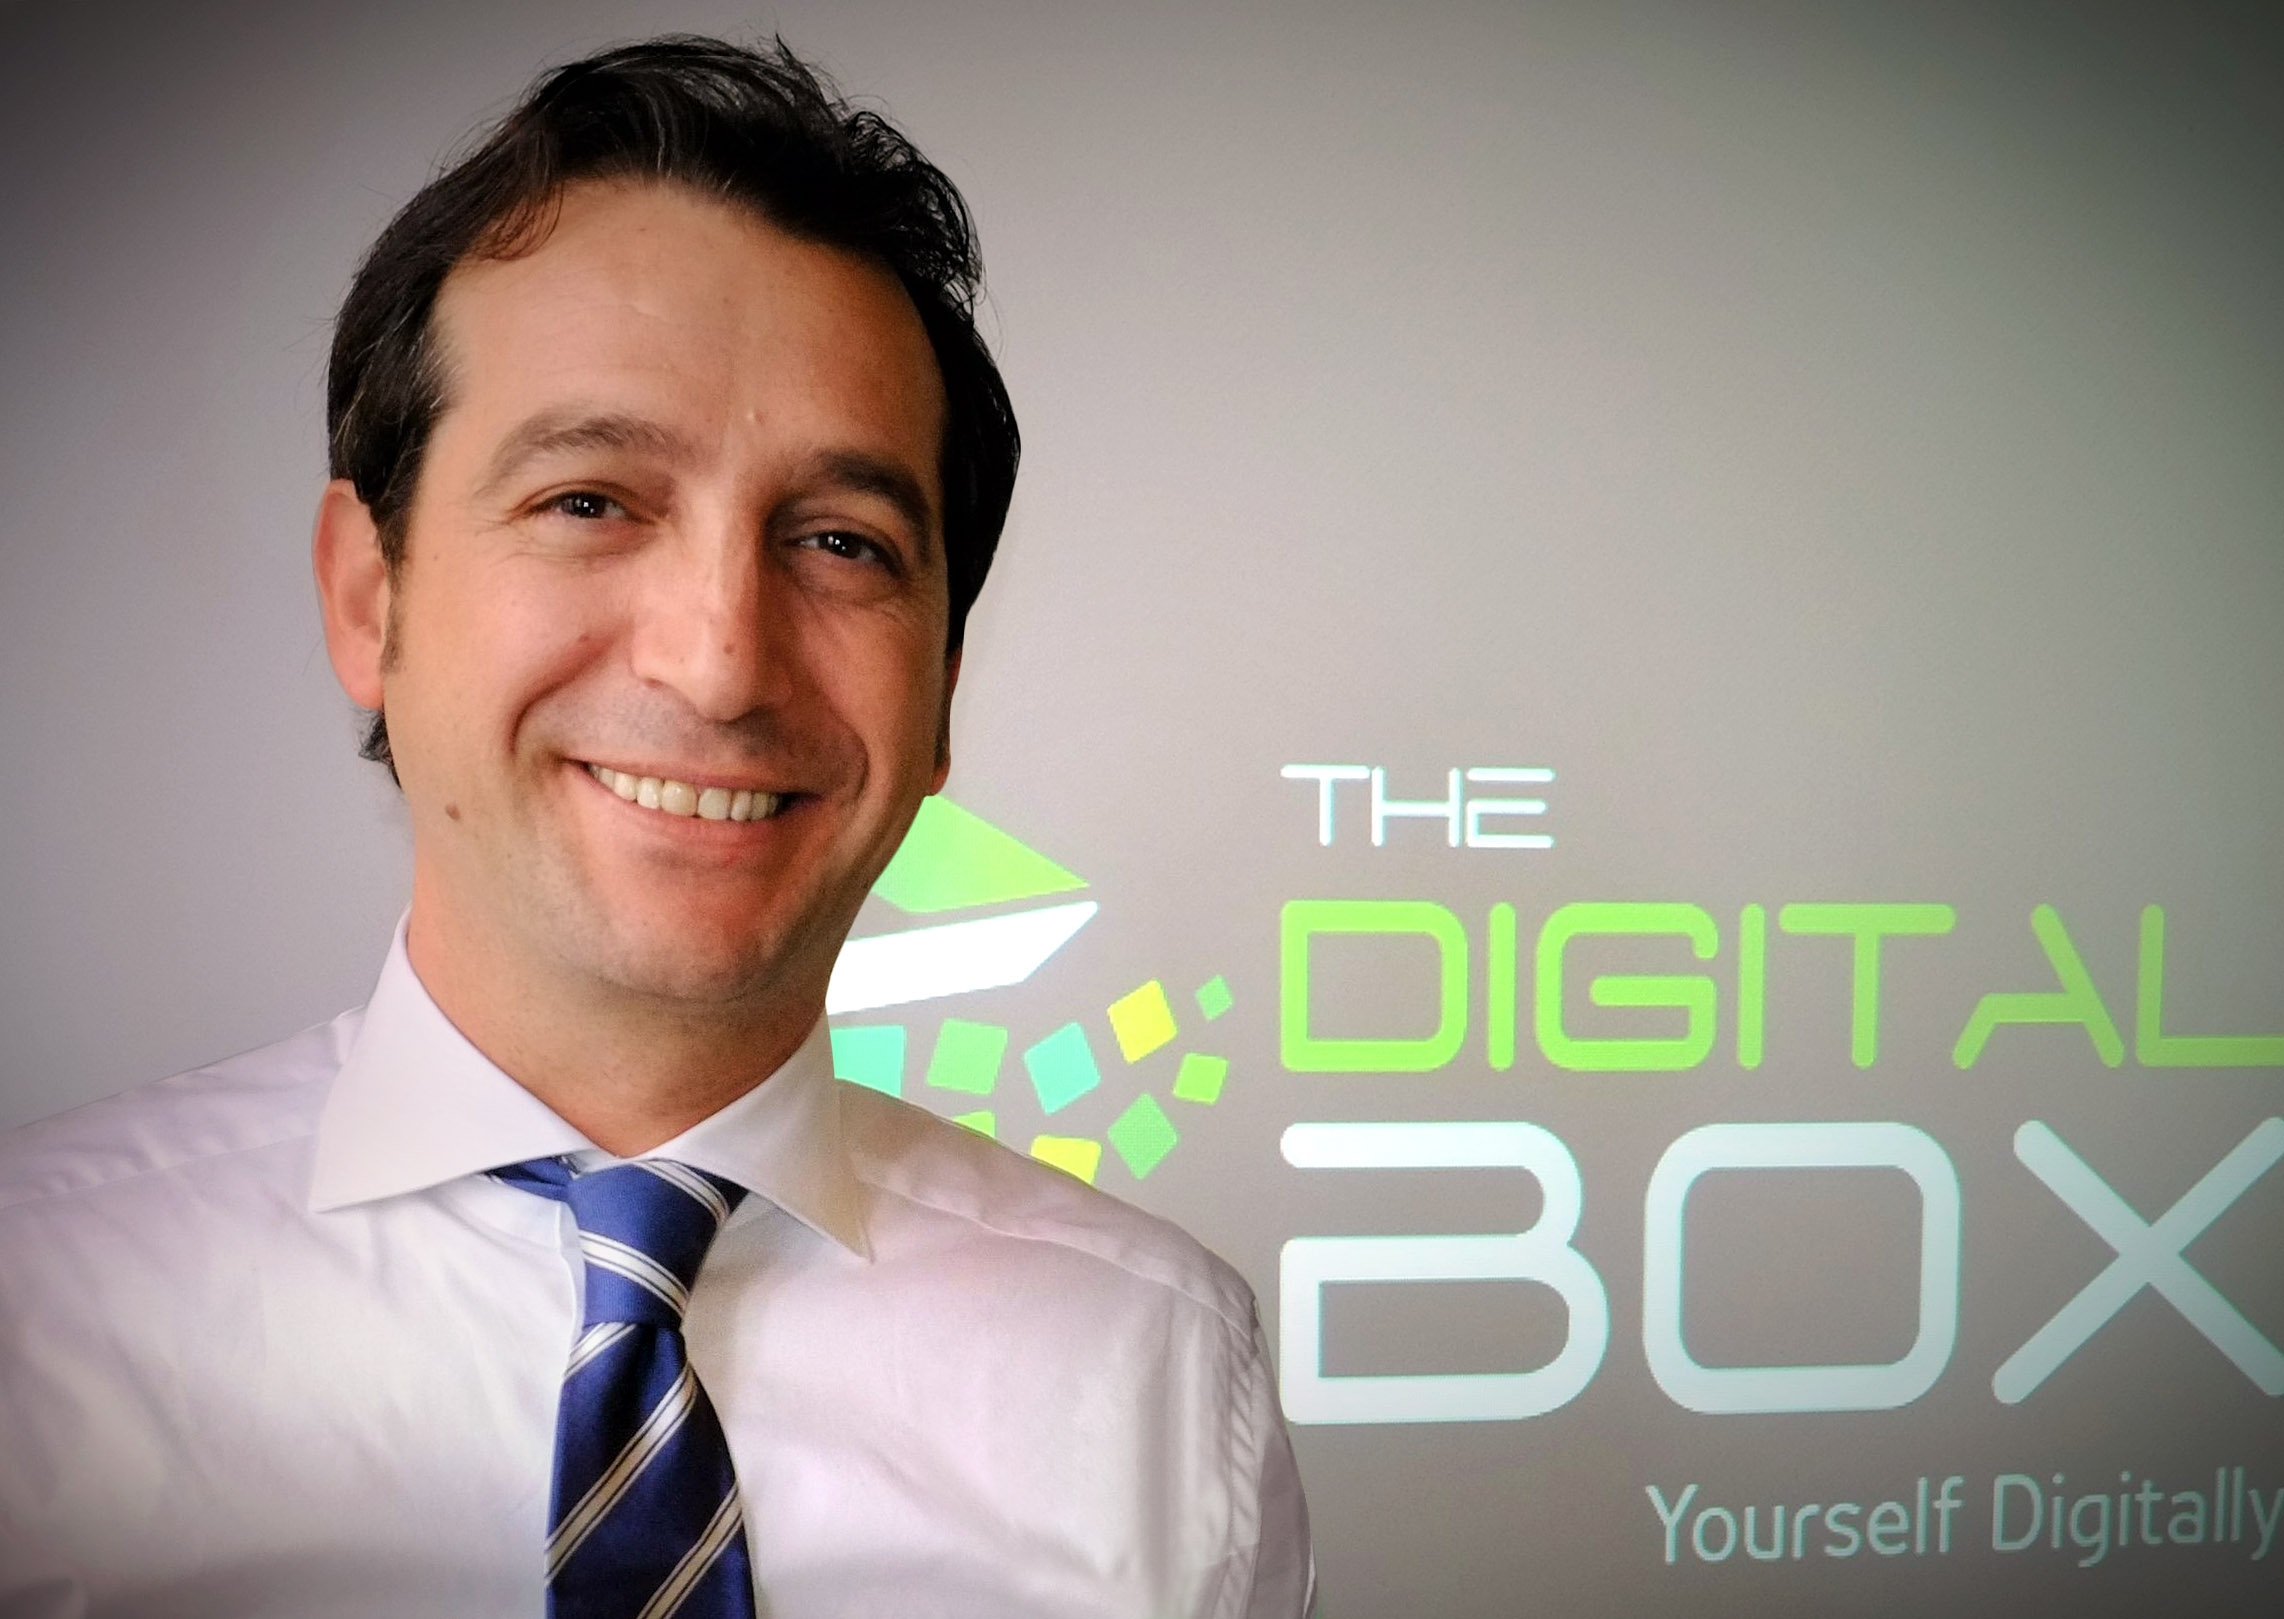 Roberto Calculli, CEO e founder, The Digital Box